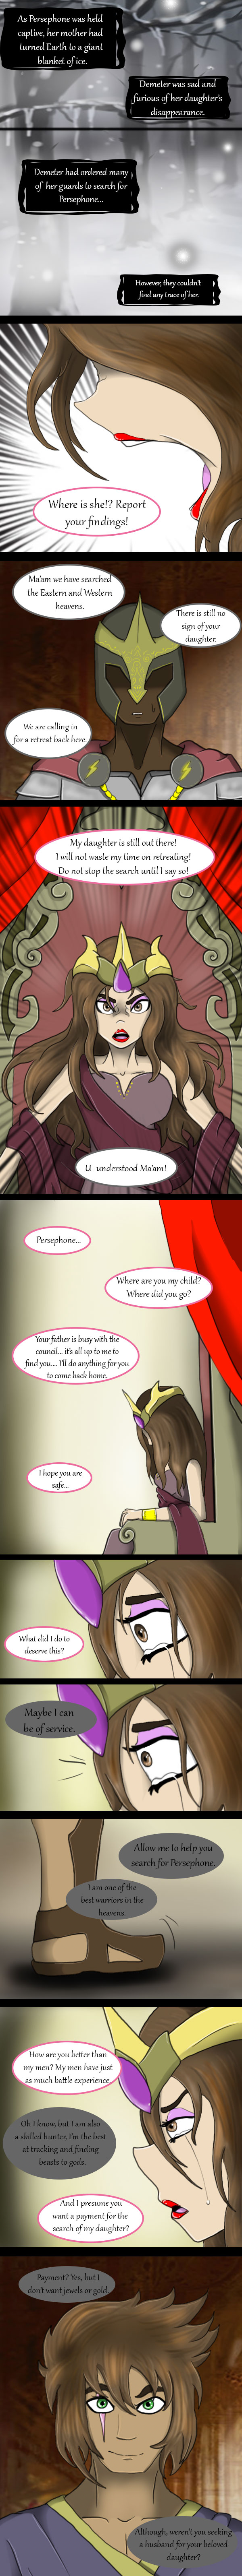 Forbiddentale page 32 by joselyn565